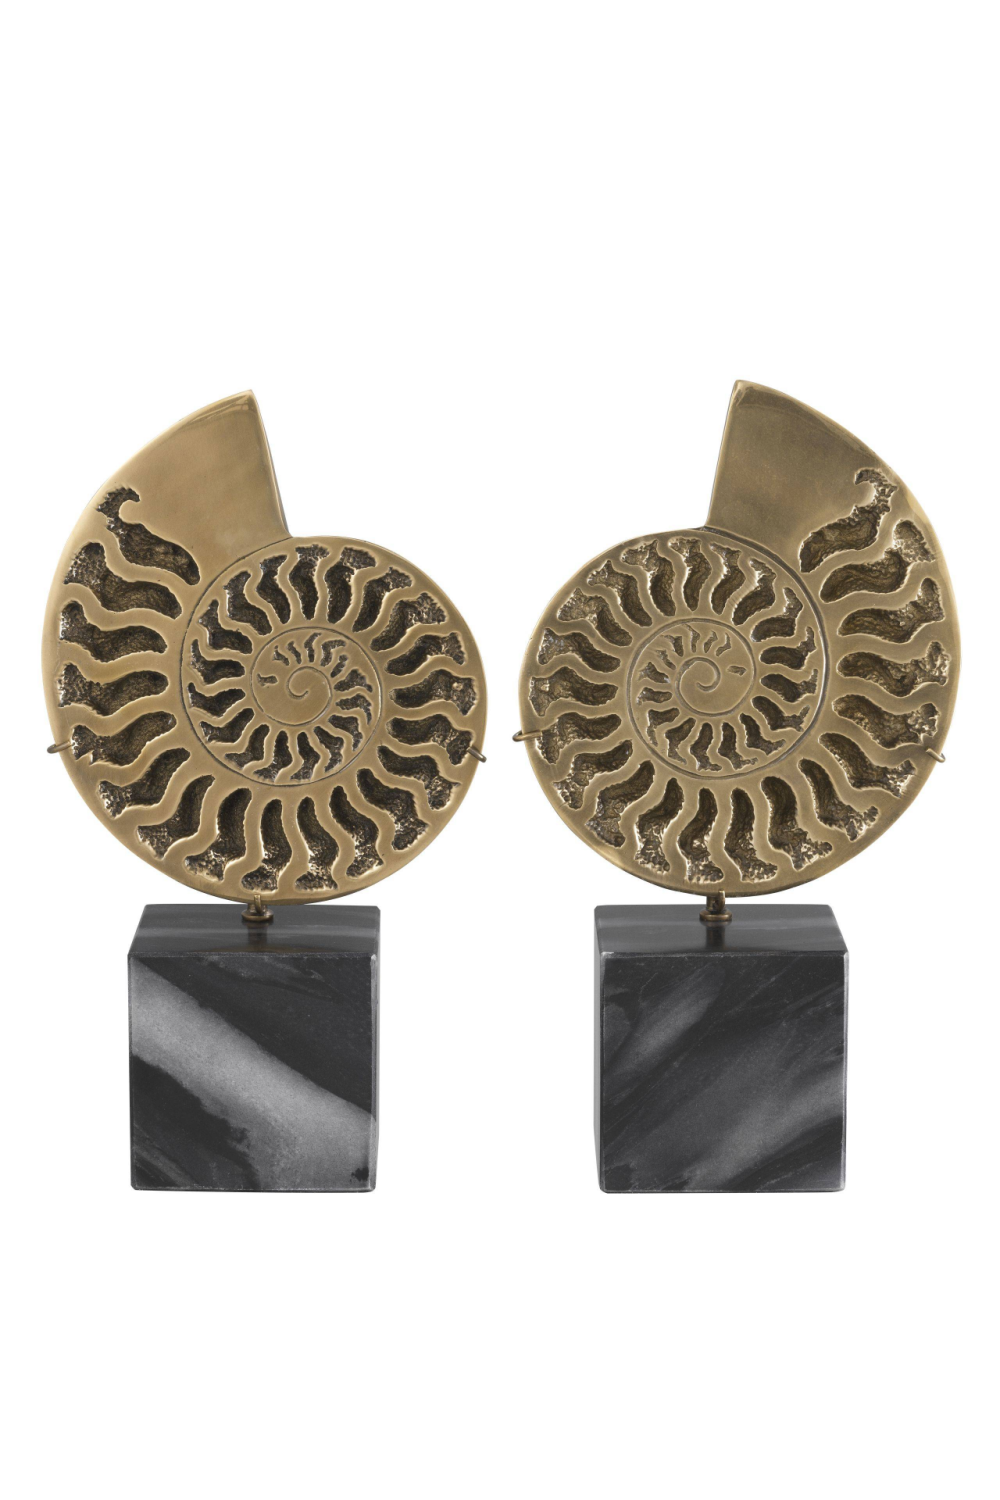 Vintage Brass Object Set of 2  | Eichholtz Ammonite